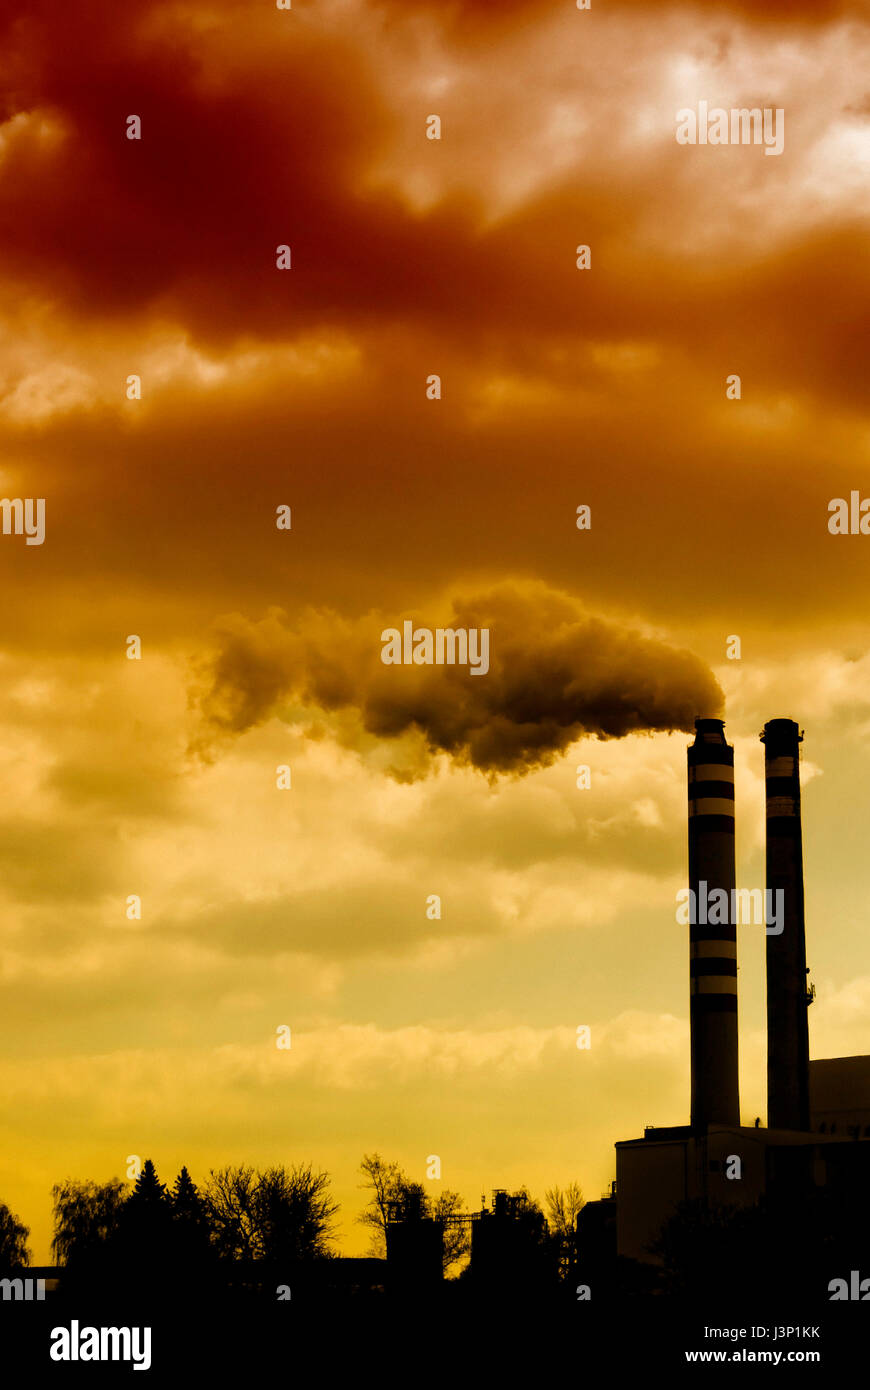 industrial plant and smoke from chimney, polluting air concept - Stock Image